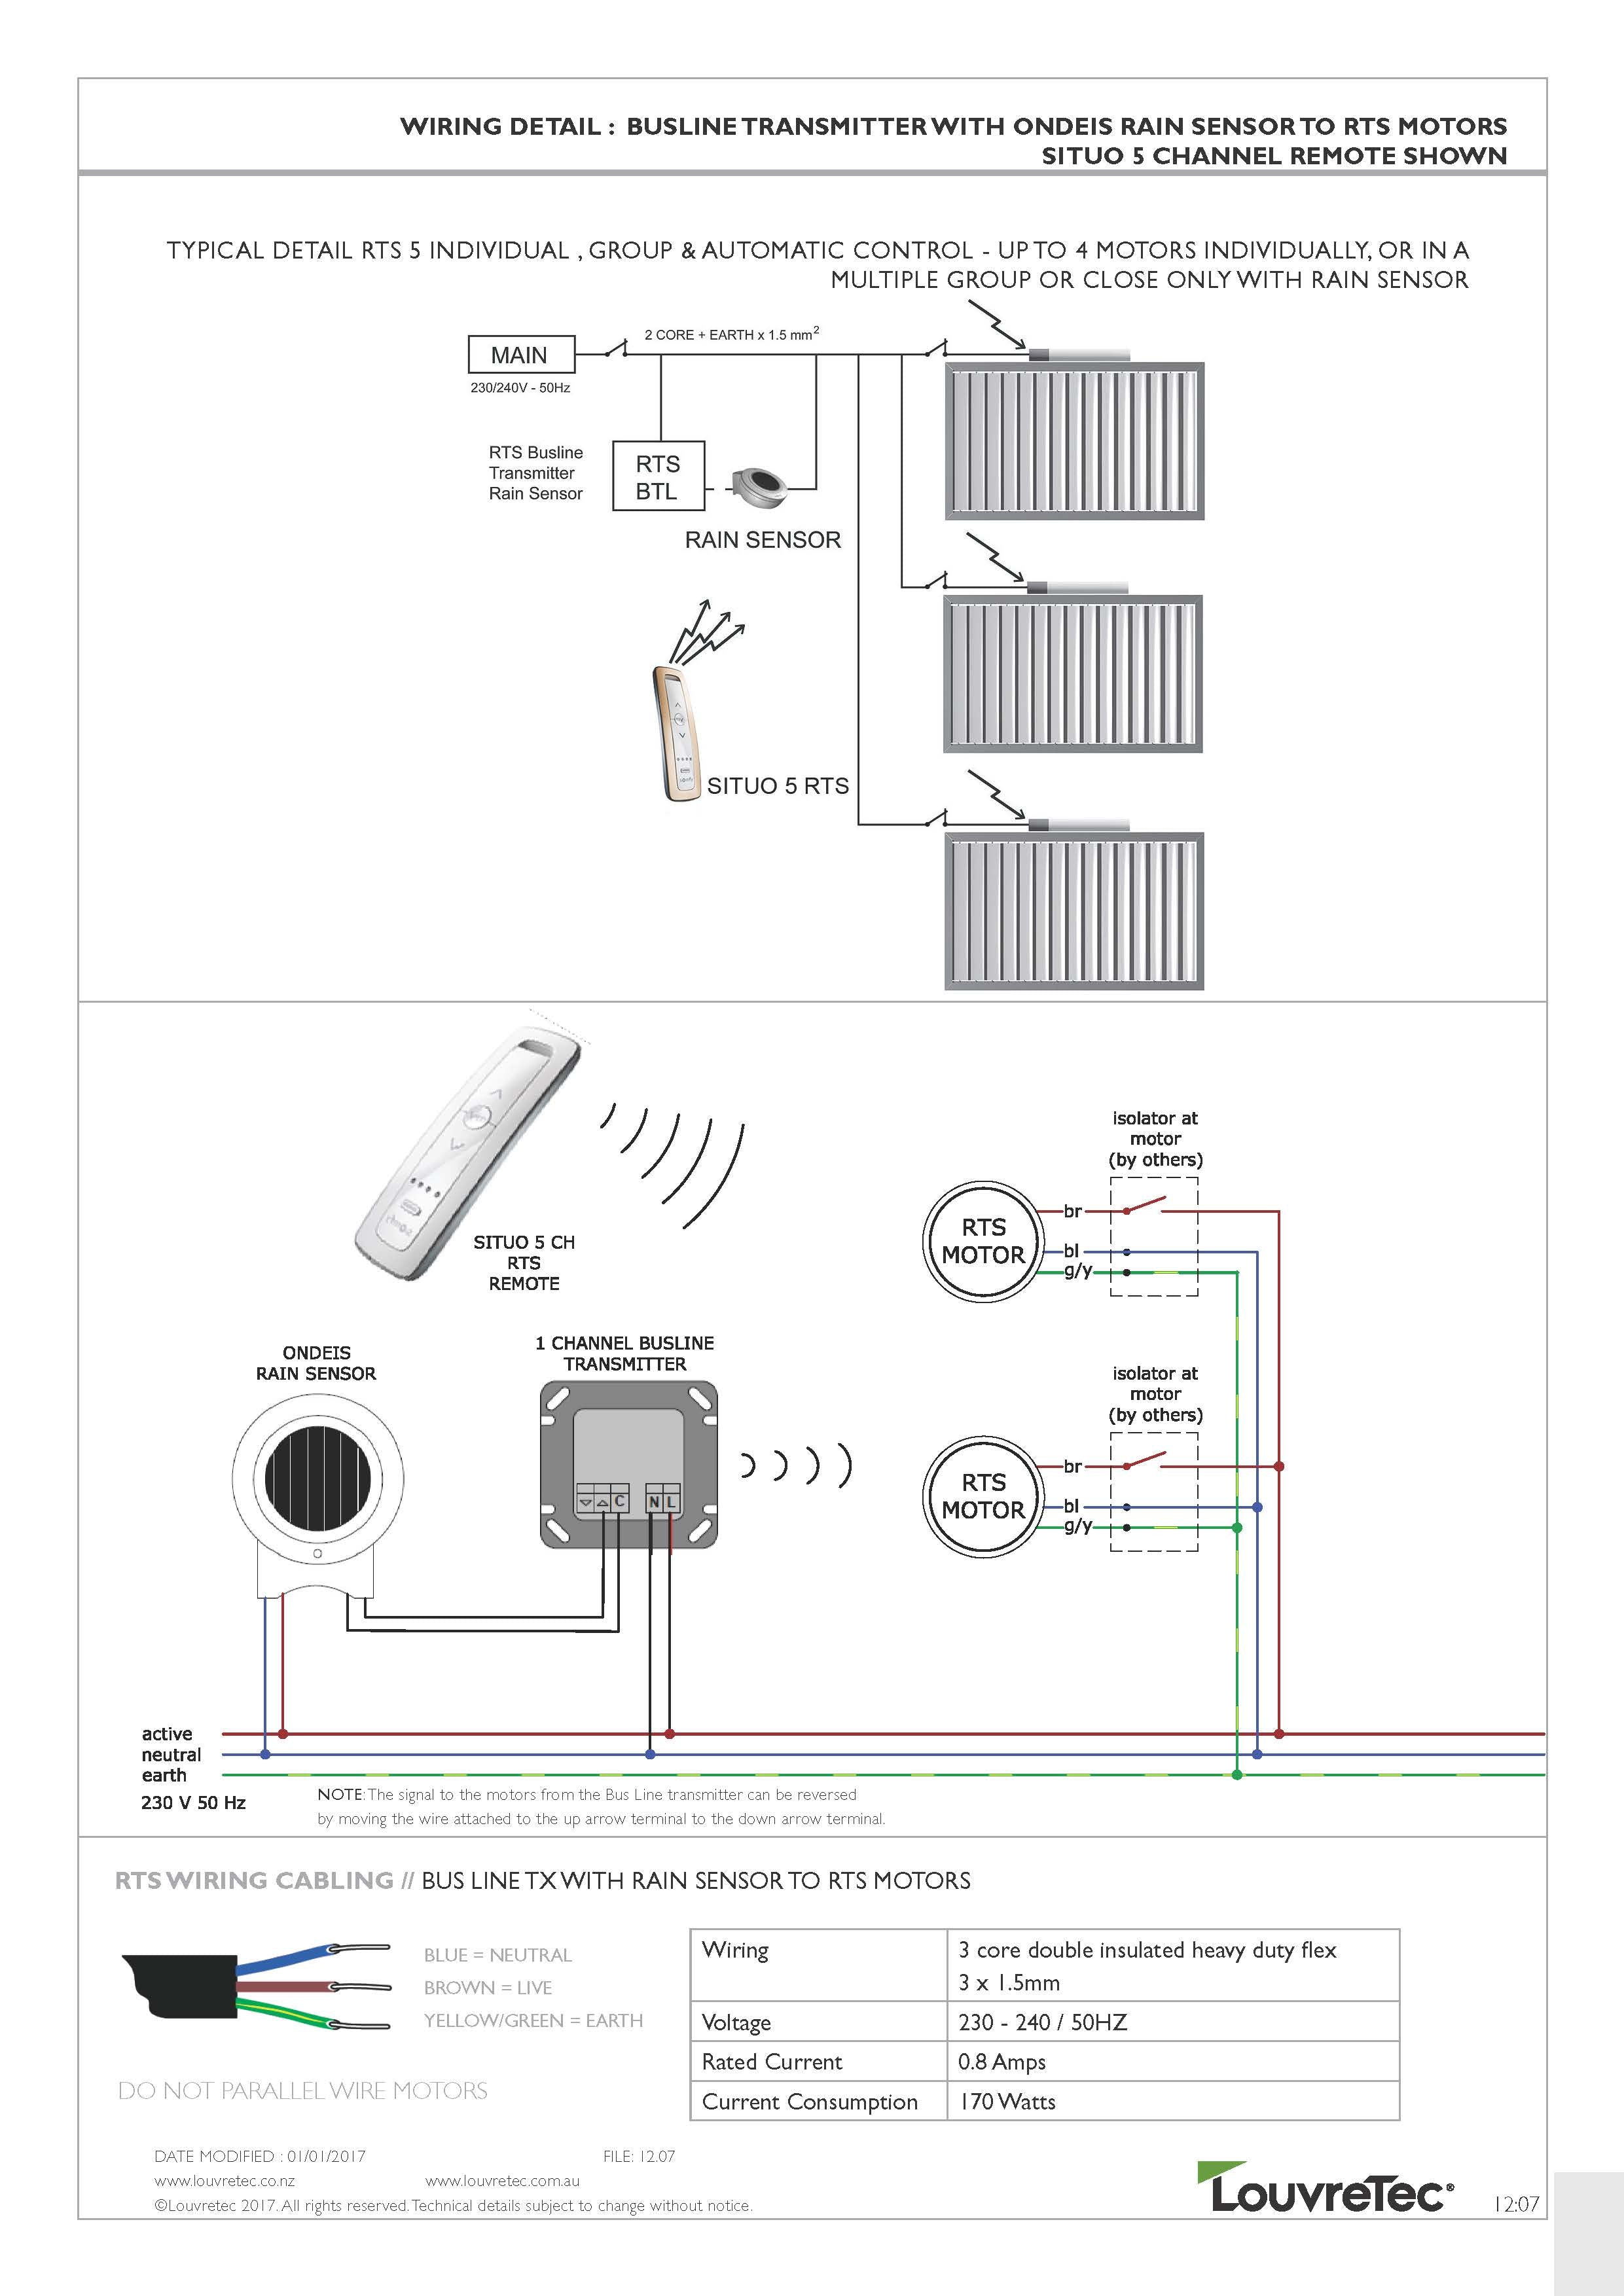 12.07?v=1502702156 technical wiring diagrams louvretec somfy rts motor wiring diagram at fashall.co